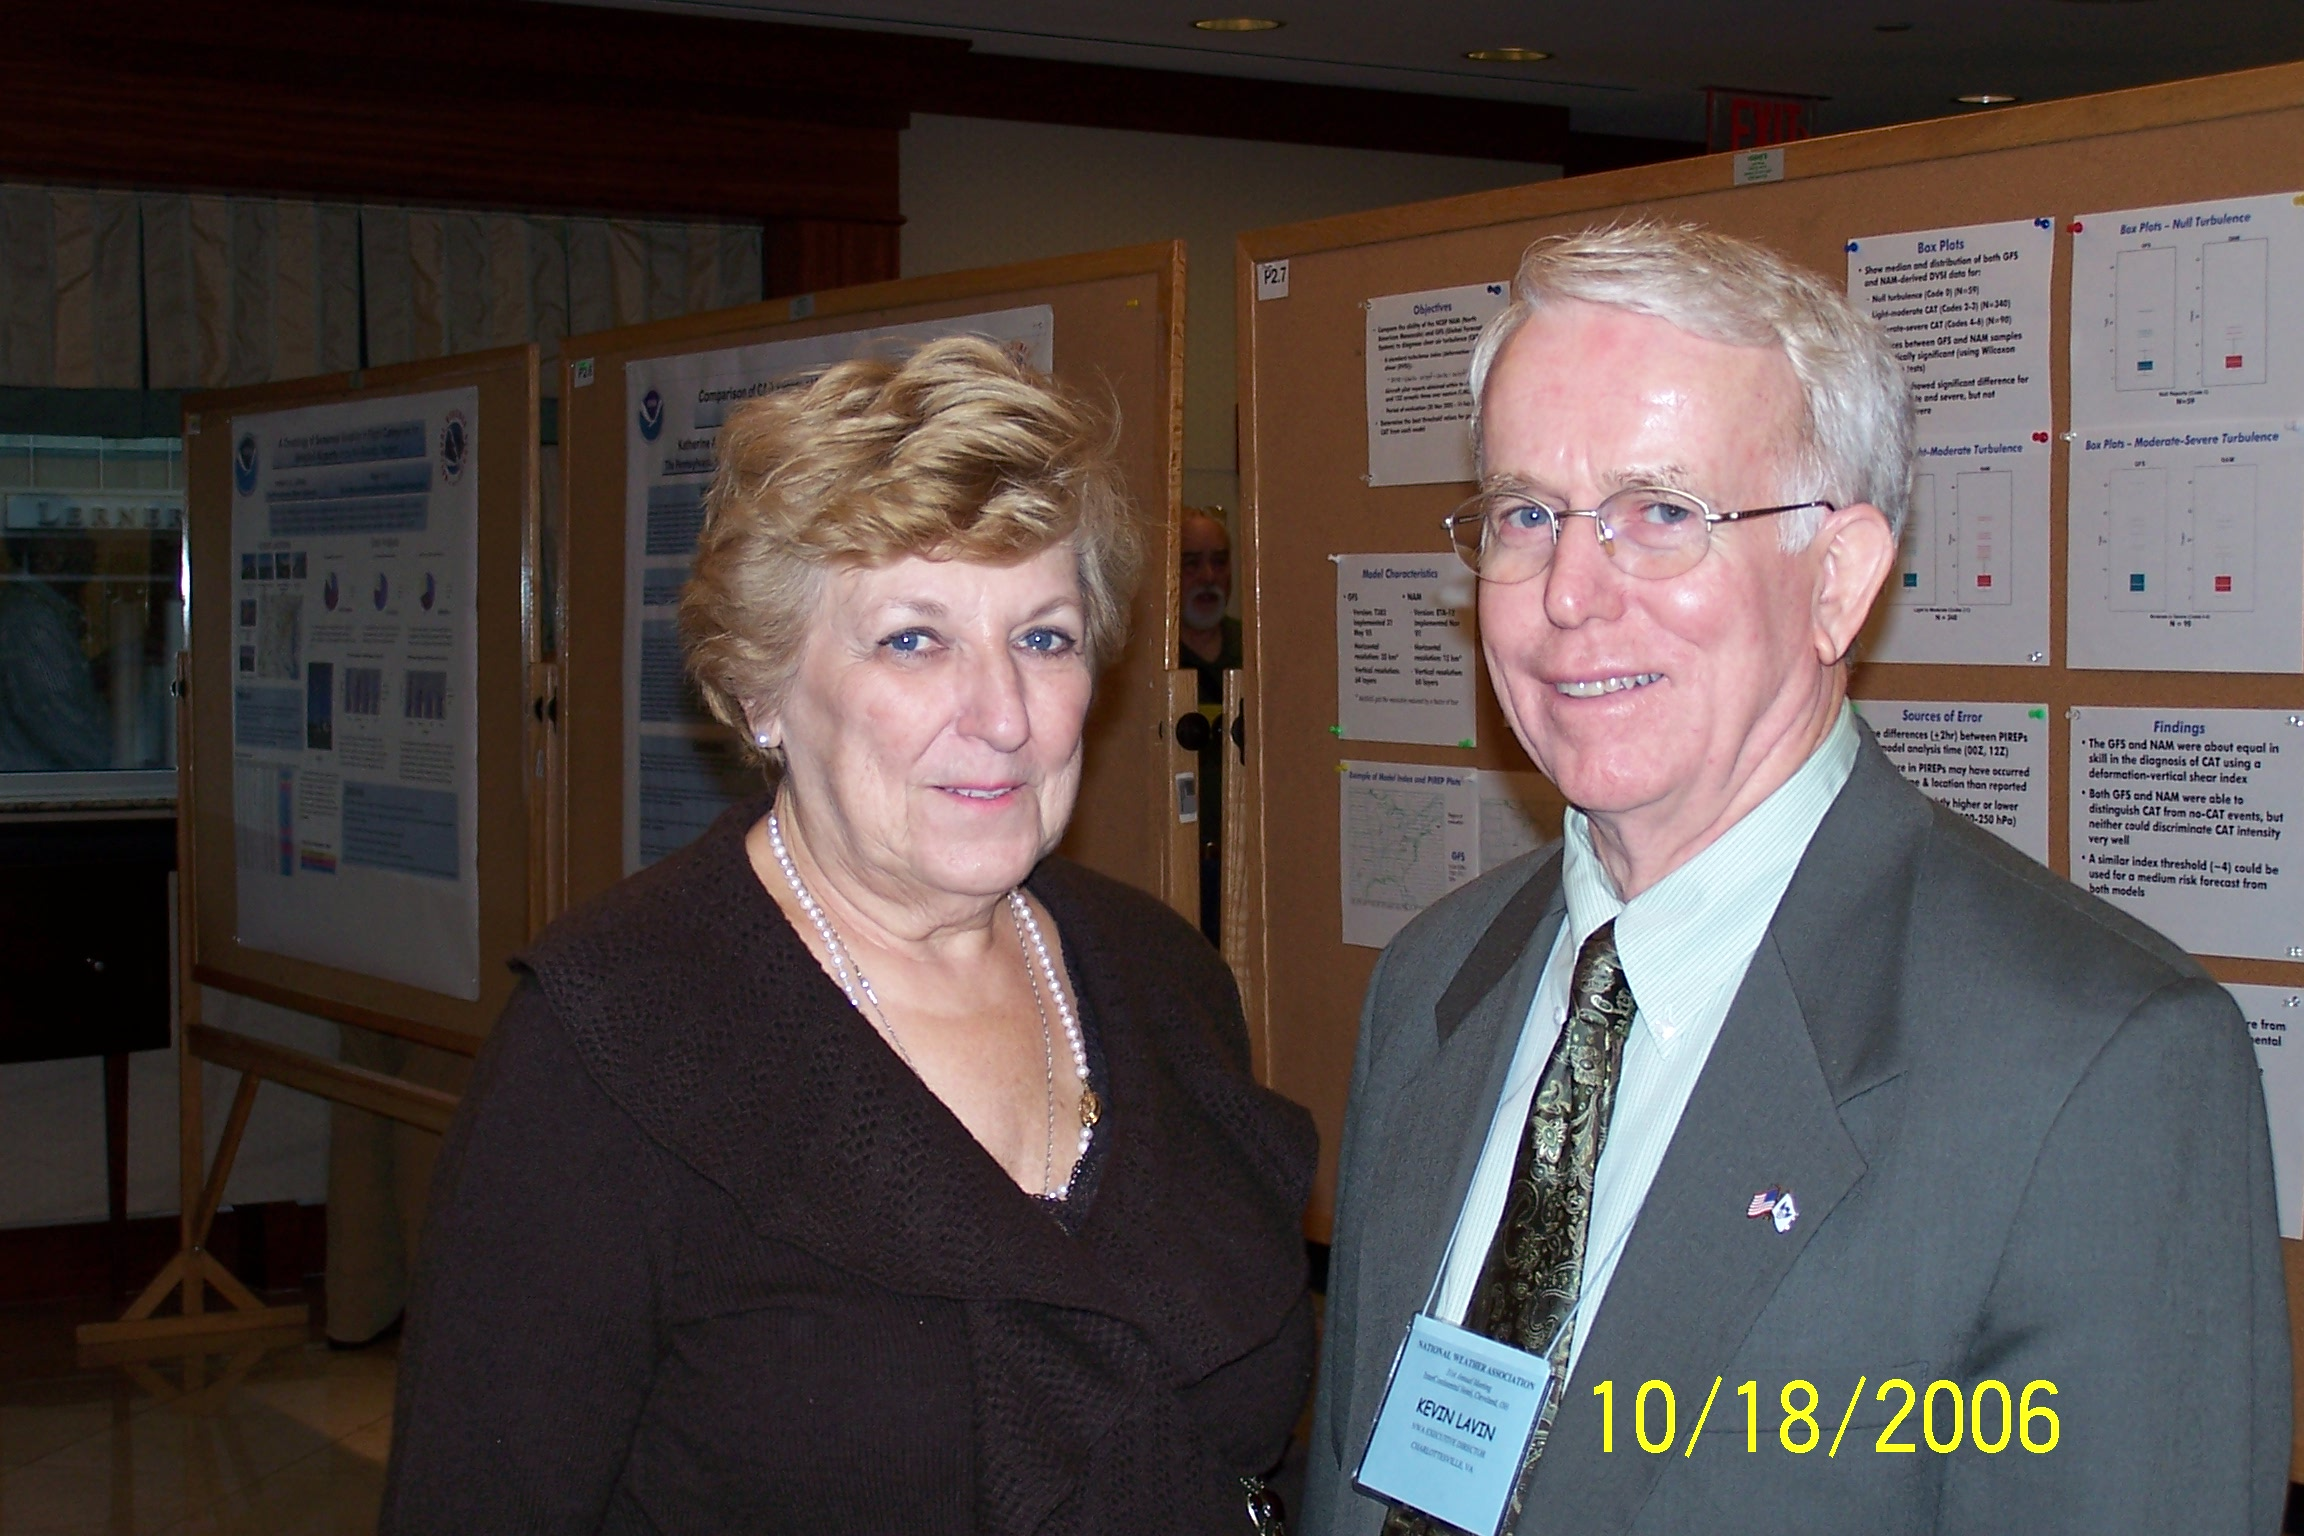 Carol Lavin with her husband, former NWA Executive Director Kevin Lavin.